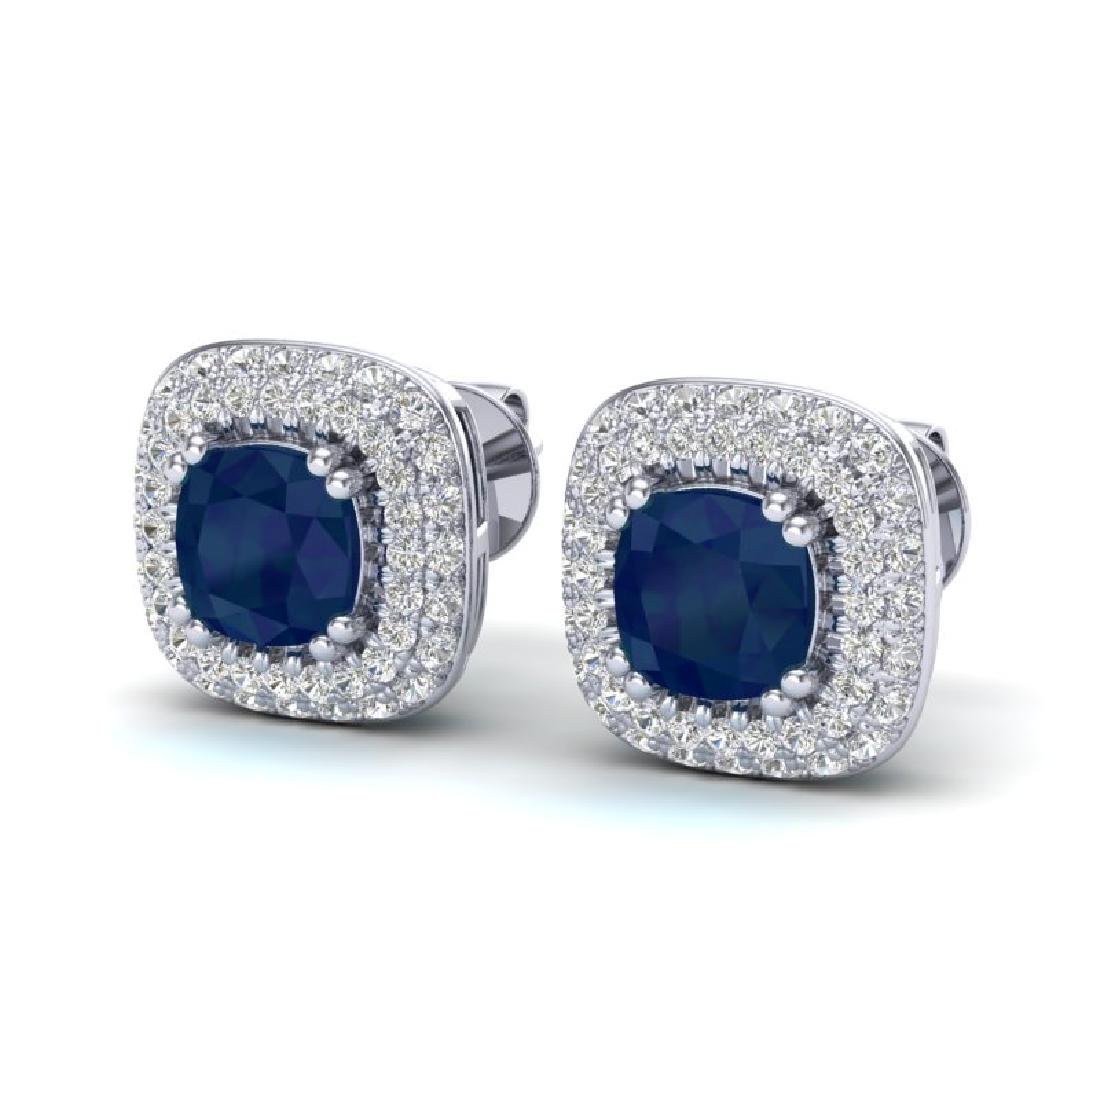 2.16 CTW Sapphire & Micro VS/SI Diamond Earrings Halo